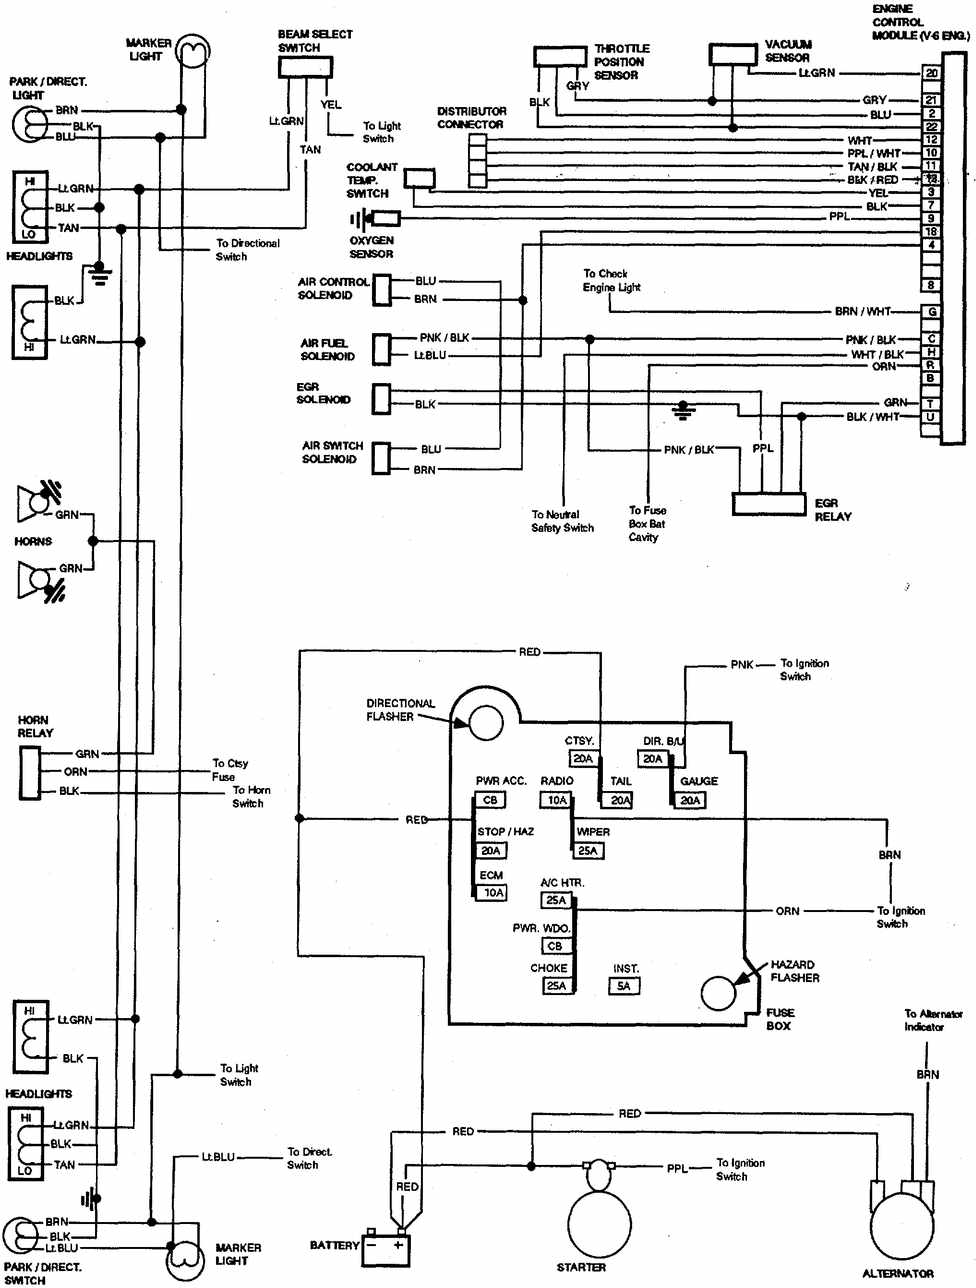 1999 ford expedition keyless entry wiring diagram